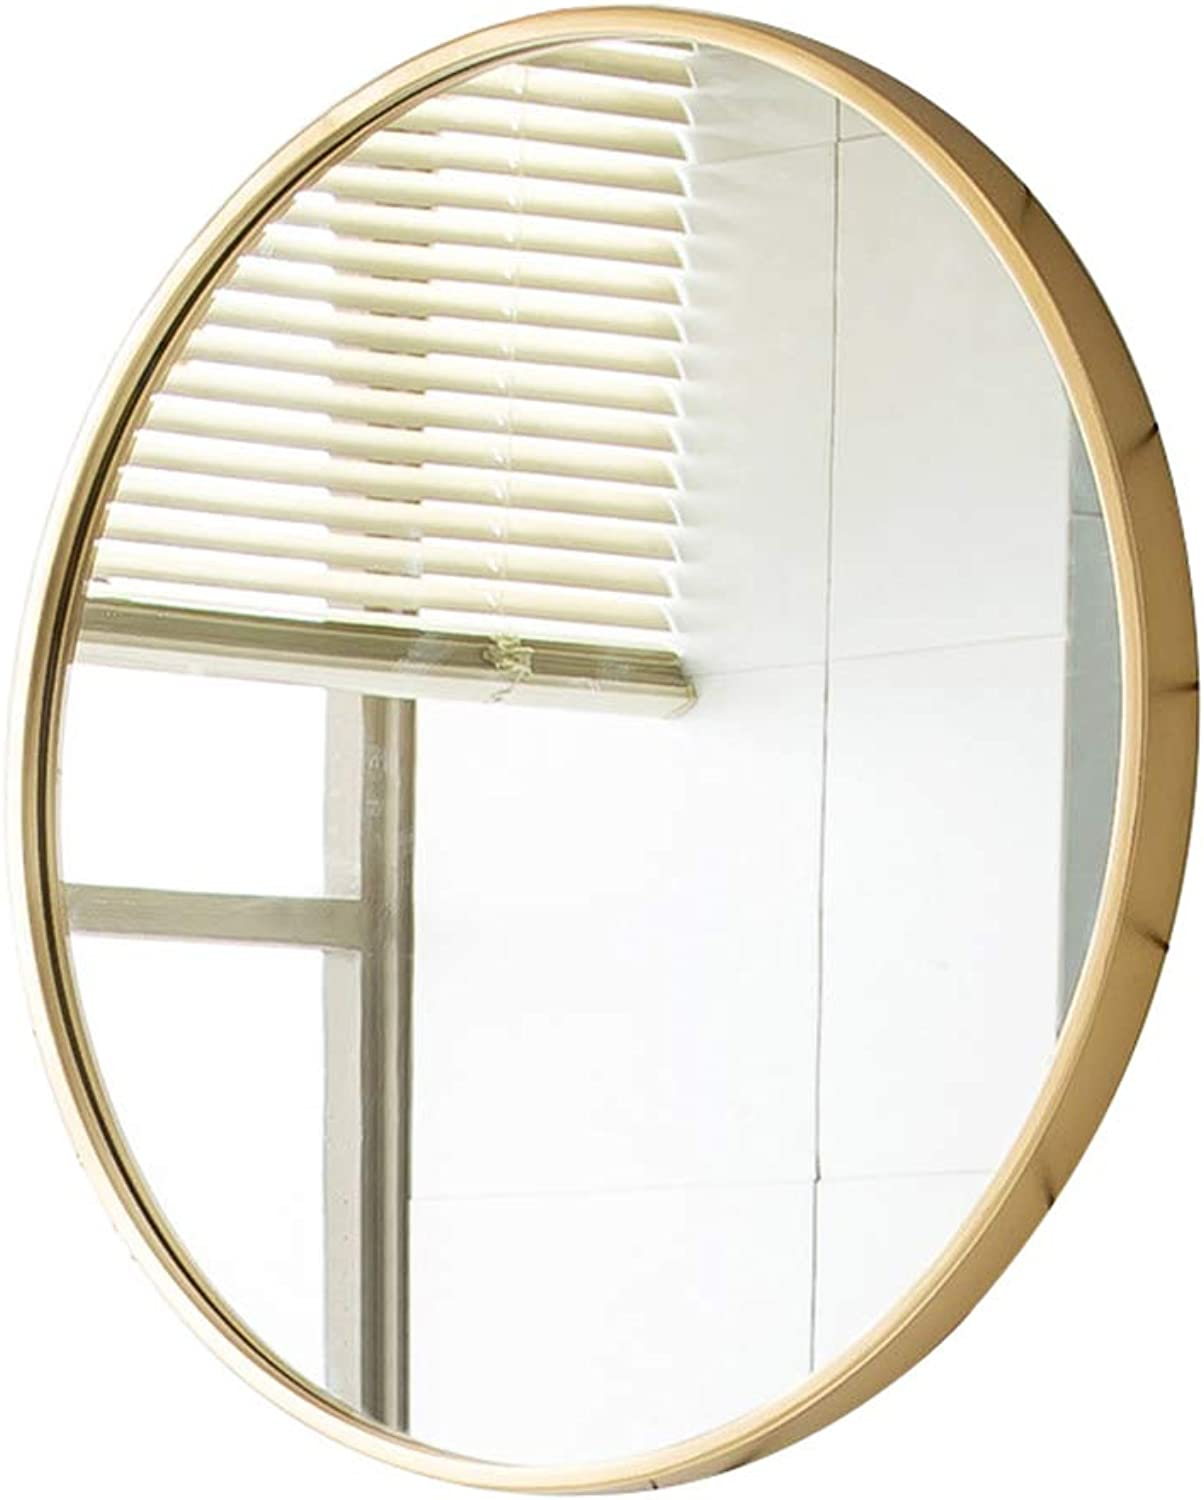 KSWD Bathroom Mirror Wall Mounted, Nordic Wrought Iron Punch-Free Round, gold, Diameter,30cm